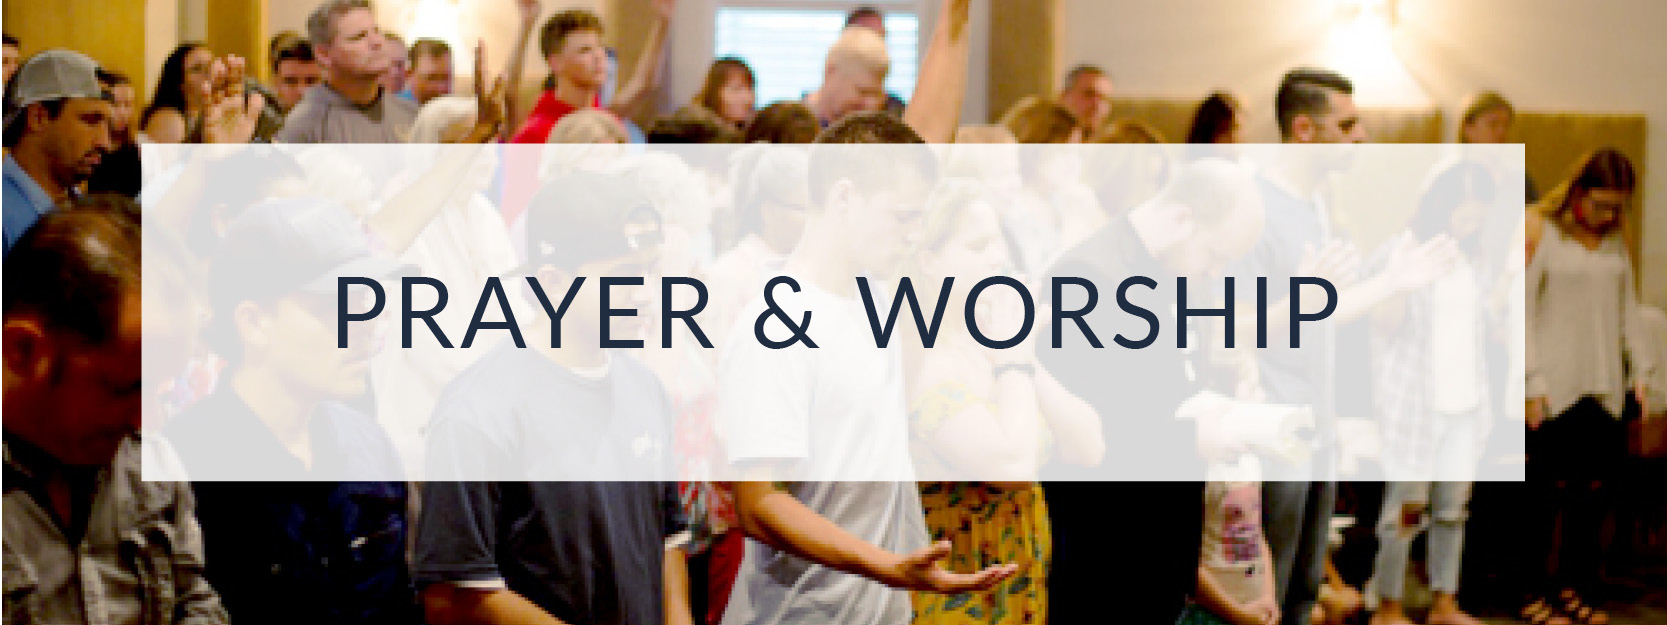 Weekly Sunday services with prayer & worship at the House of Prayer in St. Lucie County